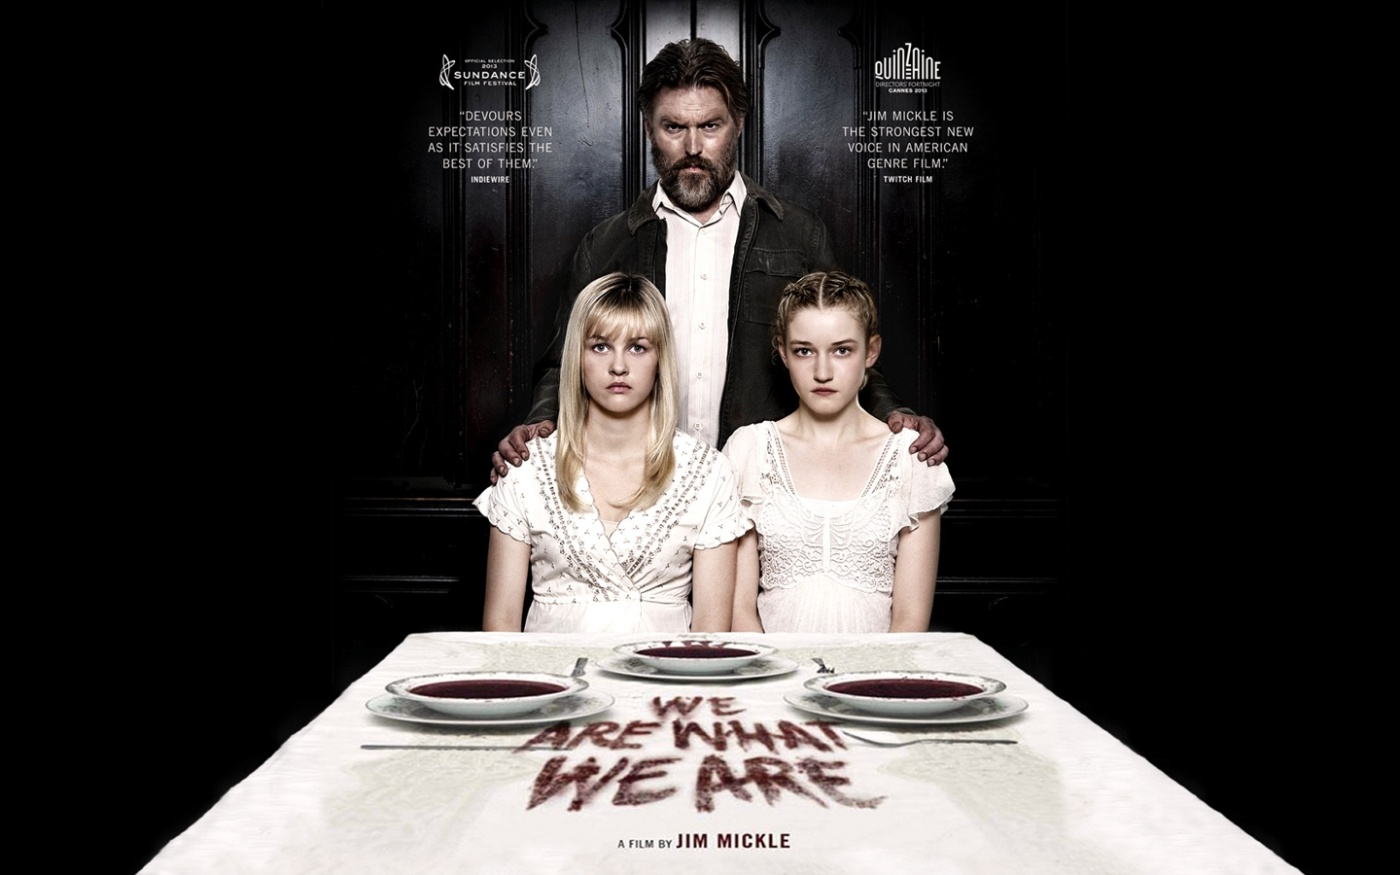 Theatrical poster for WE ARE WHAT WE ARE (2013) - Fair Use asserted